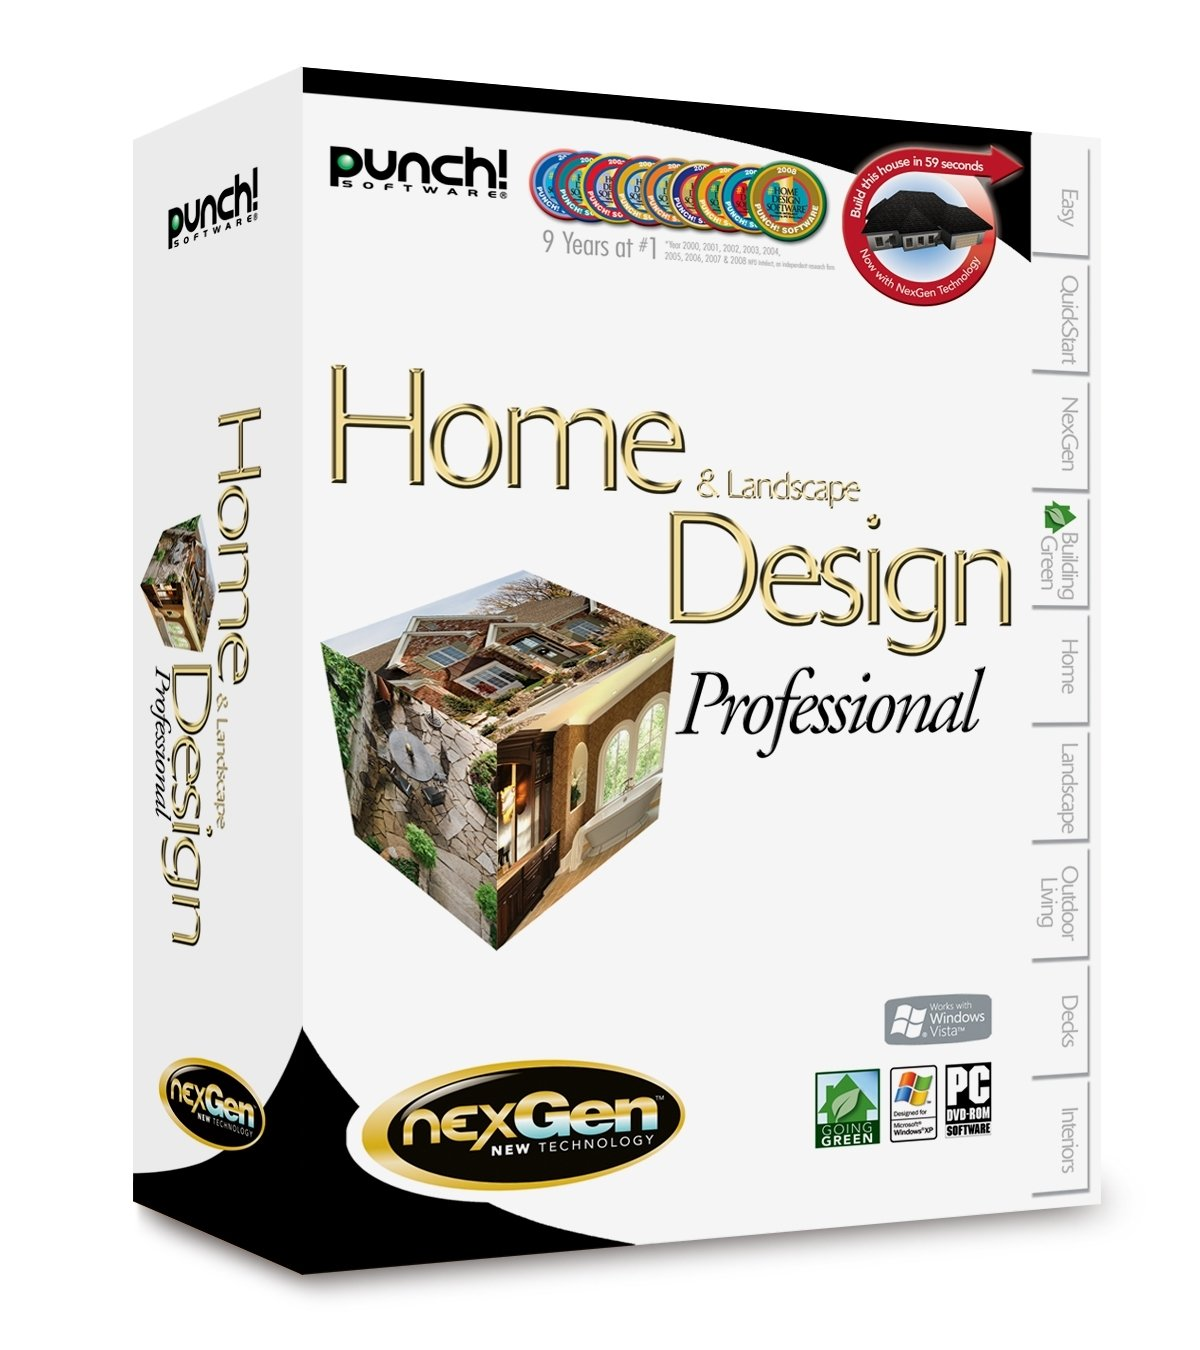 Amazon.com: Punch! Home & Landscape Design Professional with ...